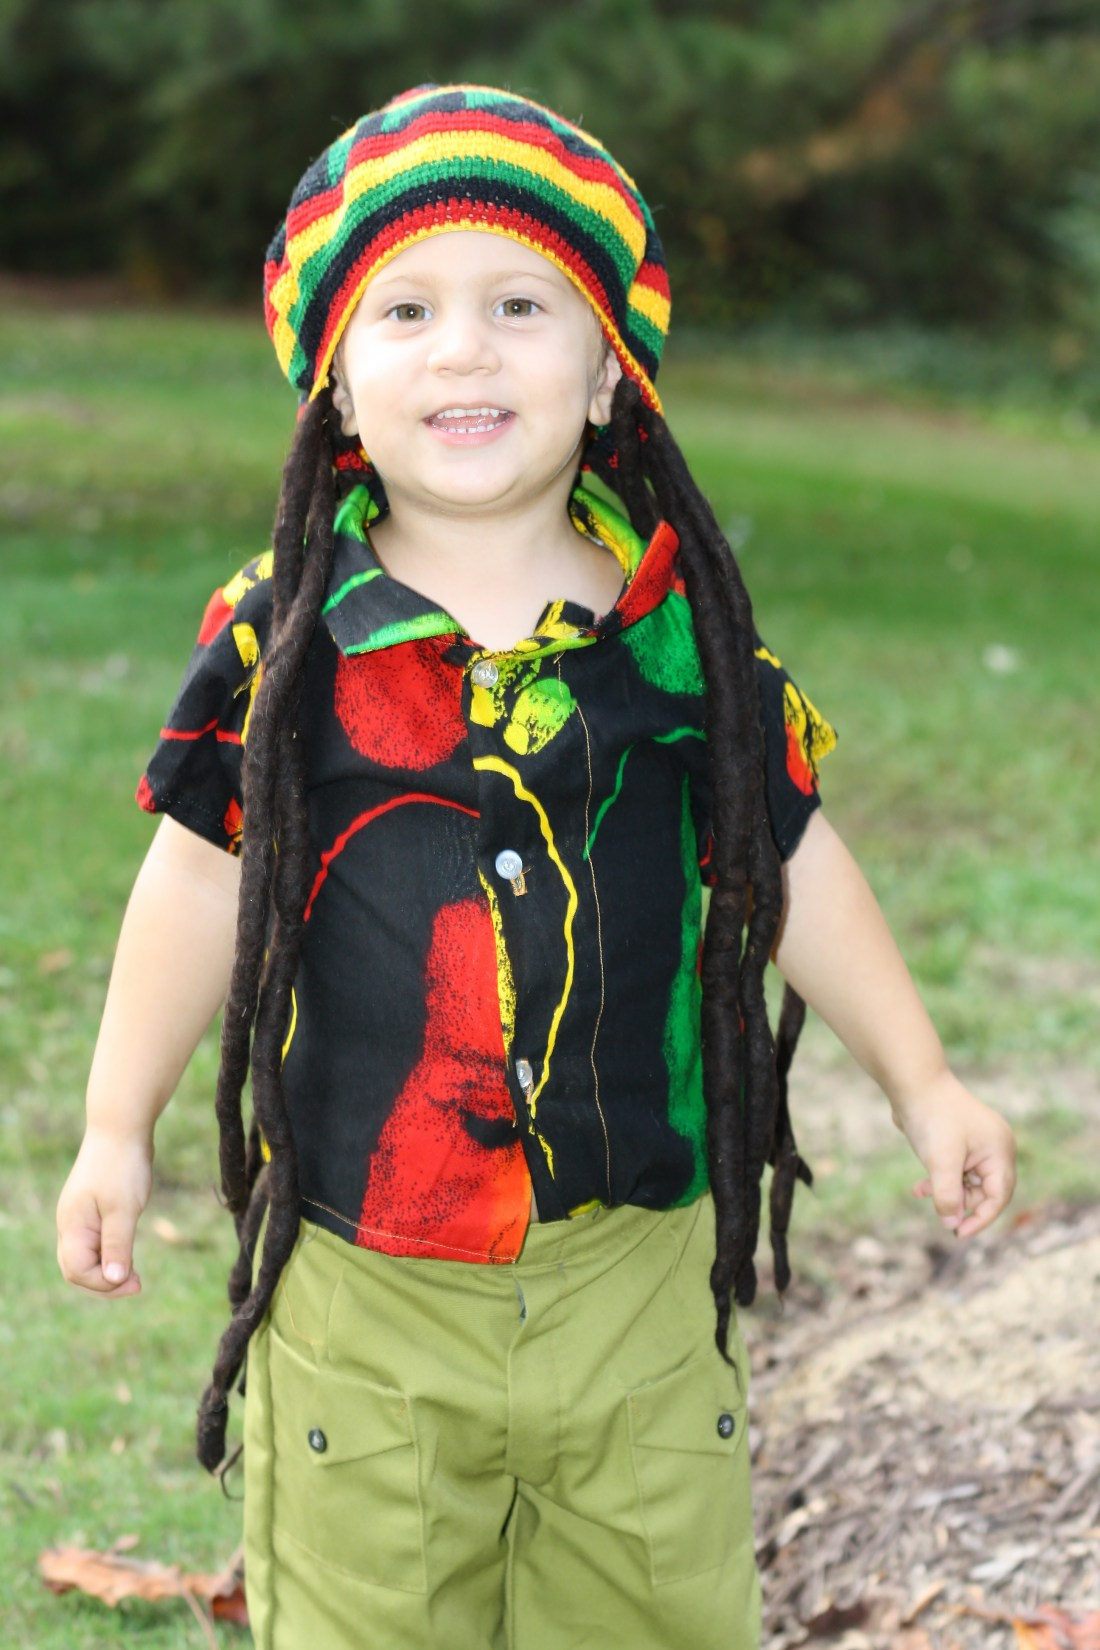 Best Halloween Costumes for Family and Kids, Bob Marley kid costume, Best Homemade Costumes || Darling Darleen